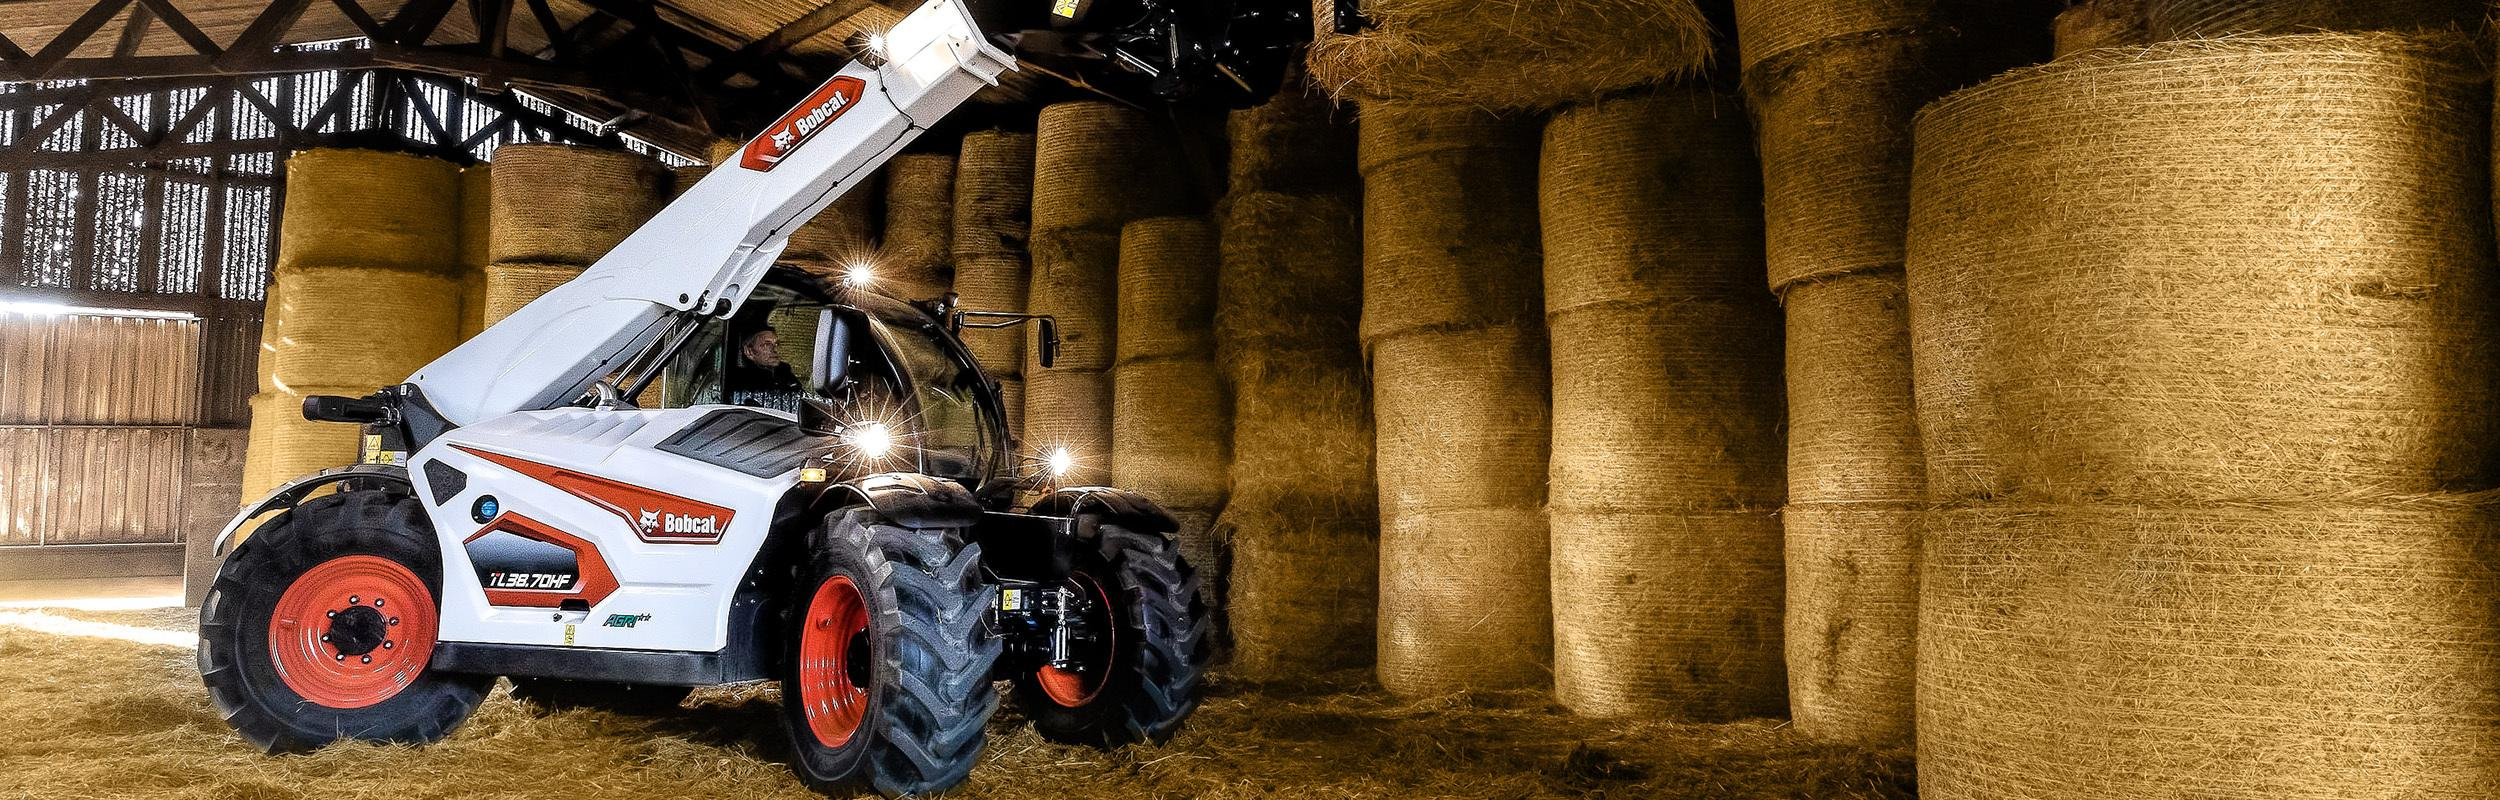 R-Series Telehandlers for Agriculture